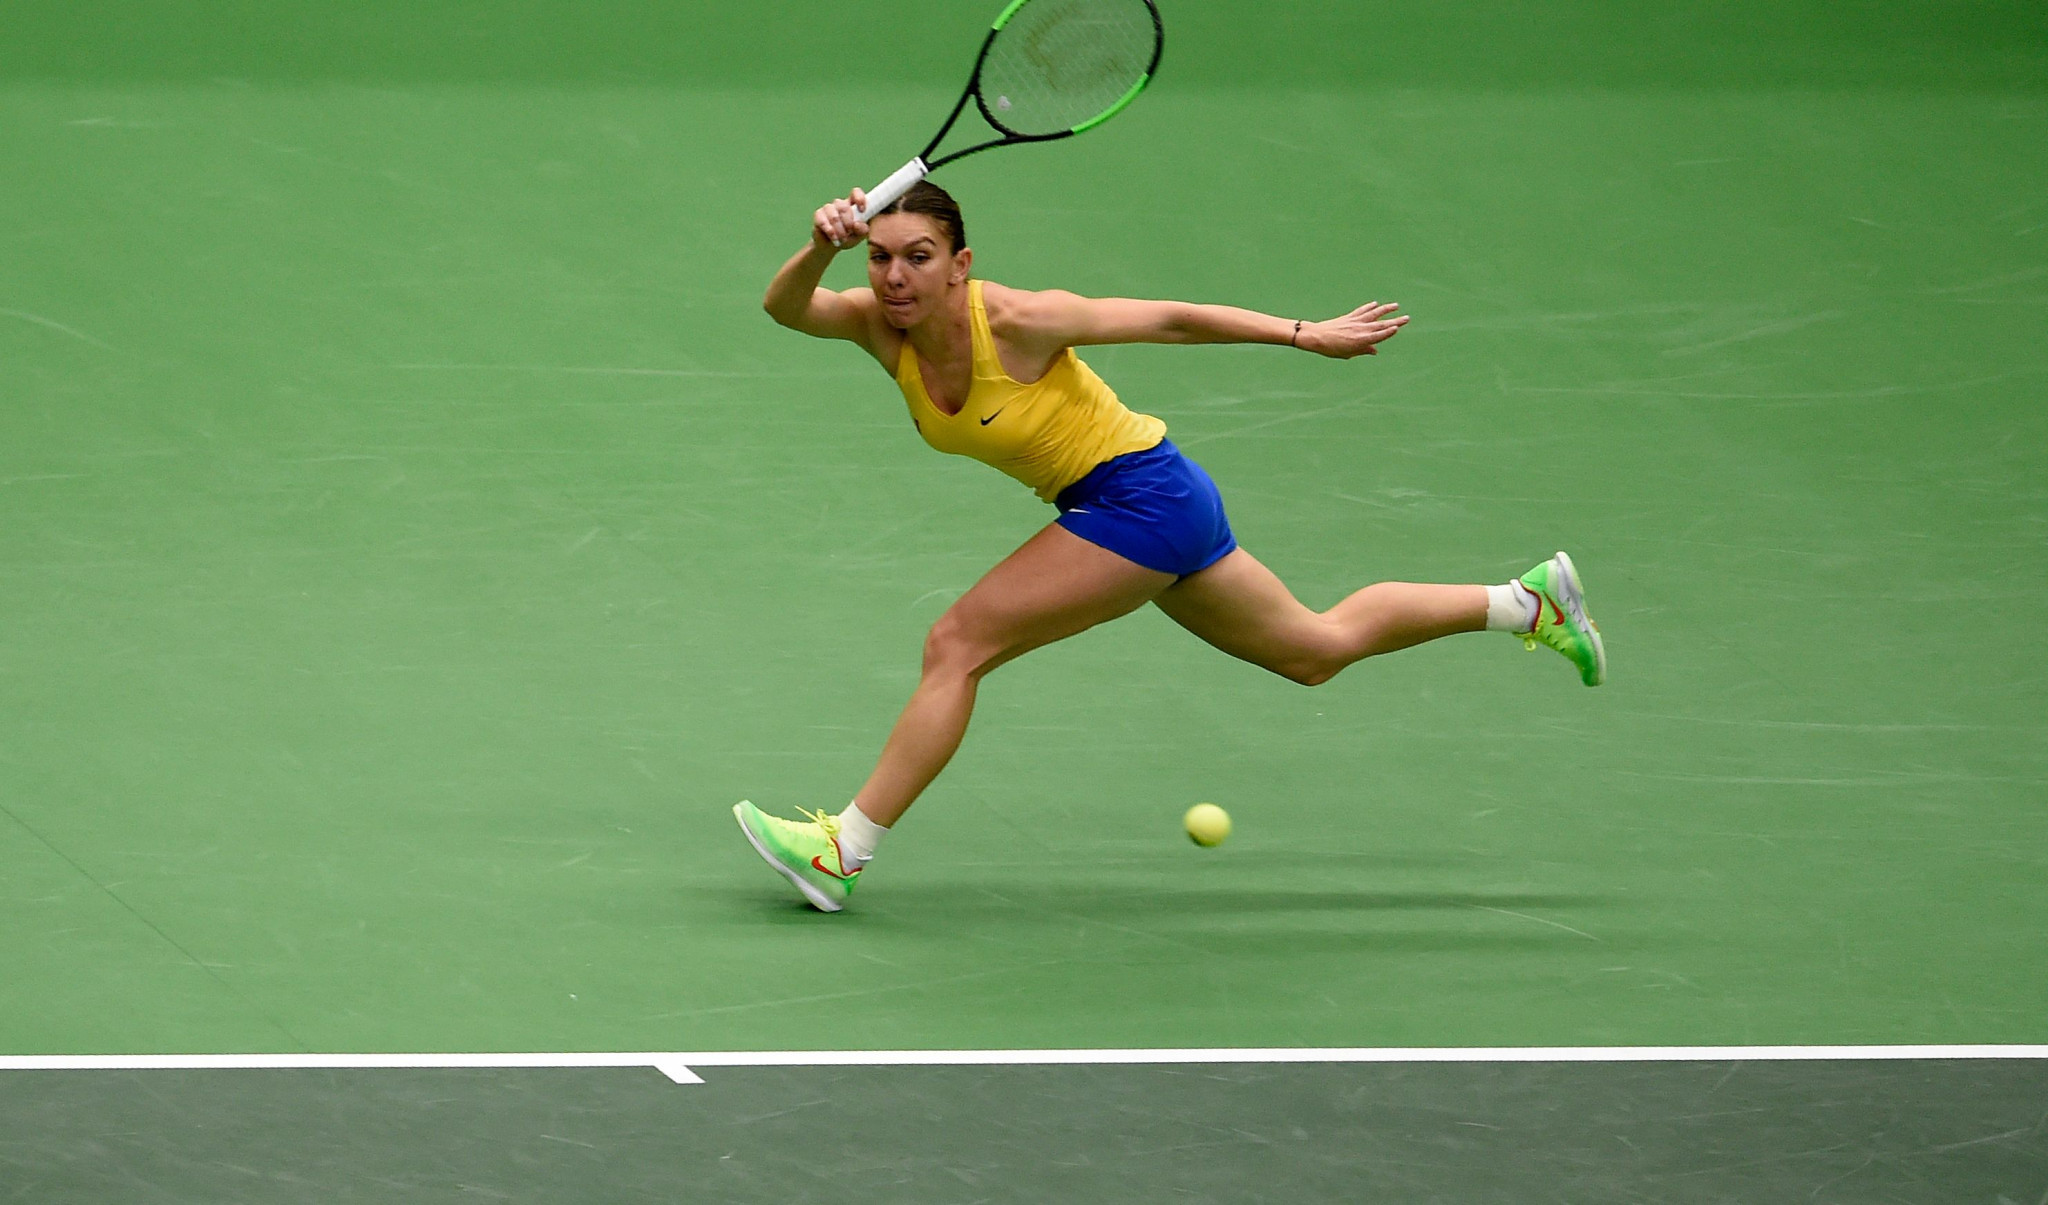 Simona Halep drew Romania level in their Fed Cup clash with the Czech Republic ©Getty Images